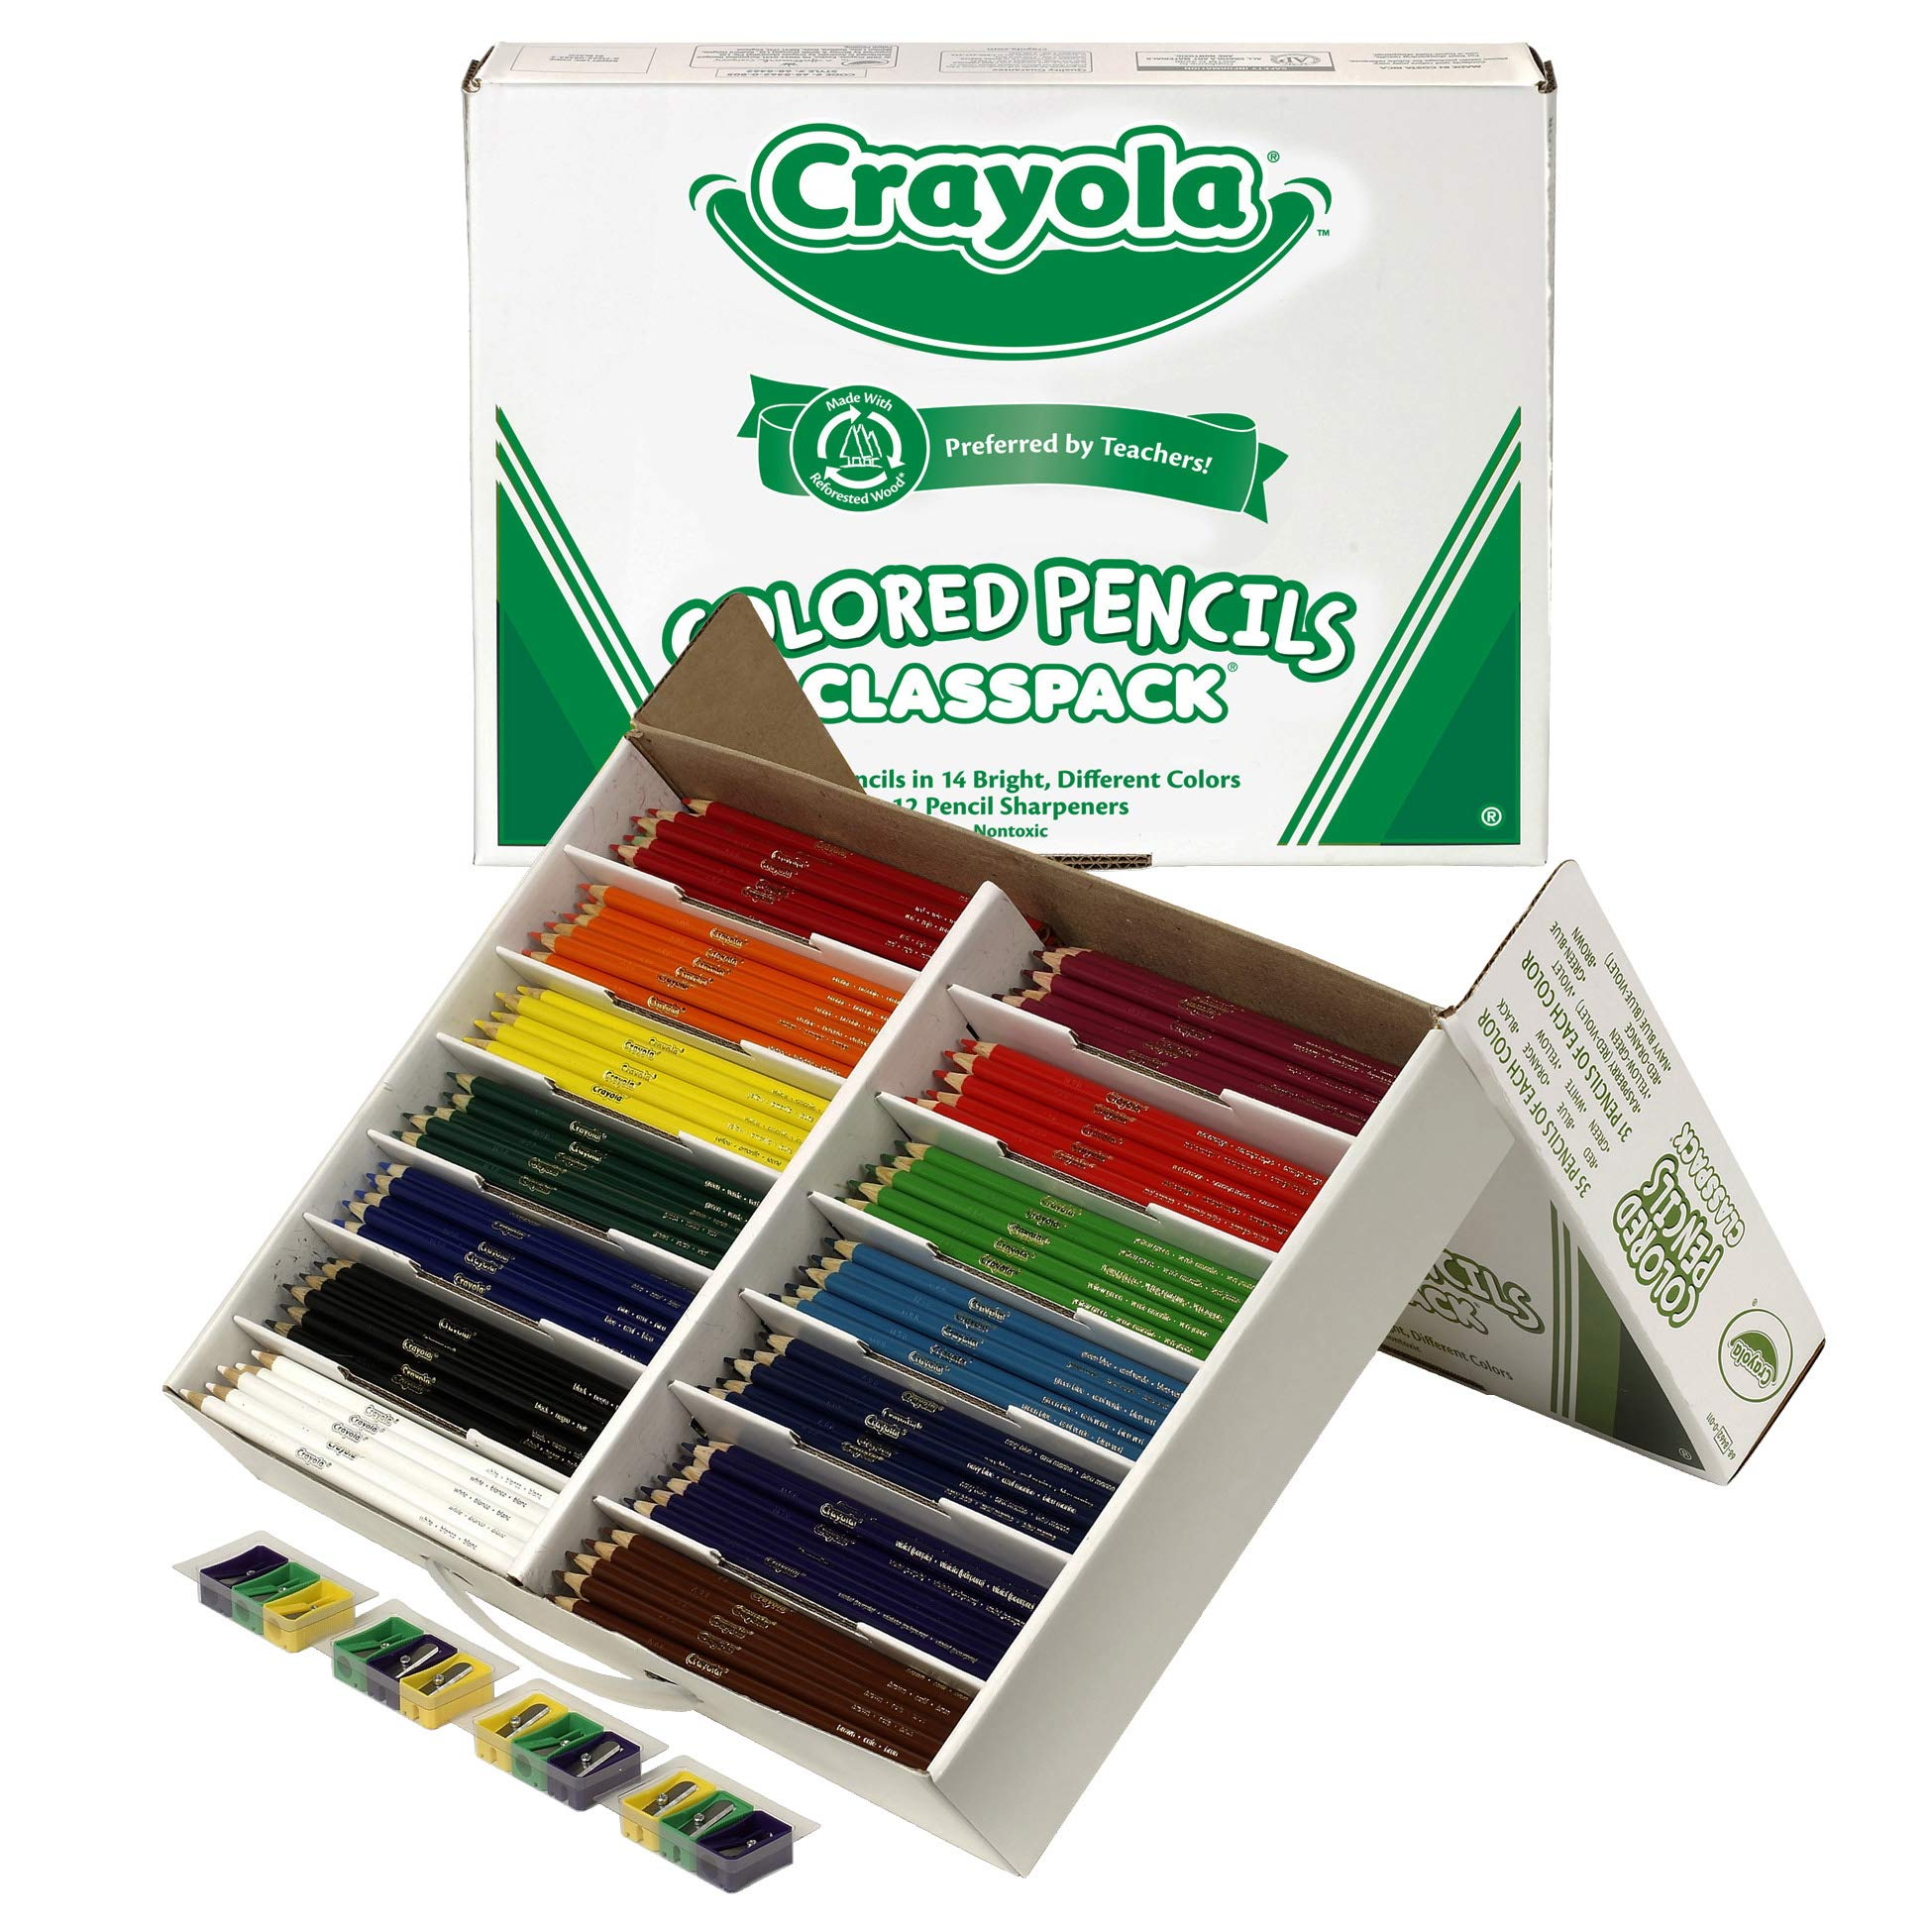 Crayola Colored Pencil Classpack, School Supplies, 14 Assorted Colors, 462 Count